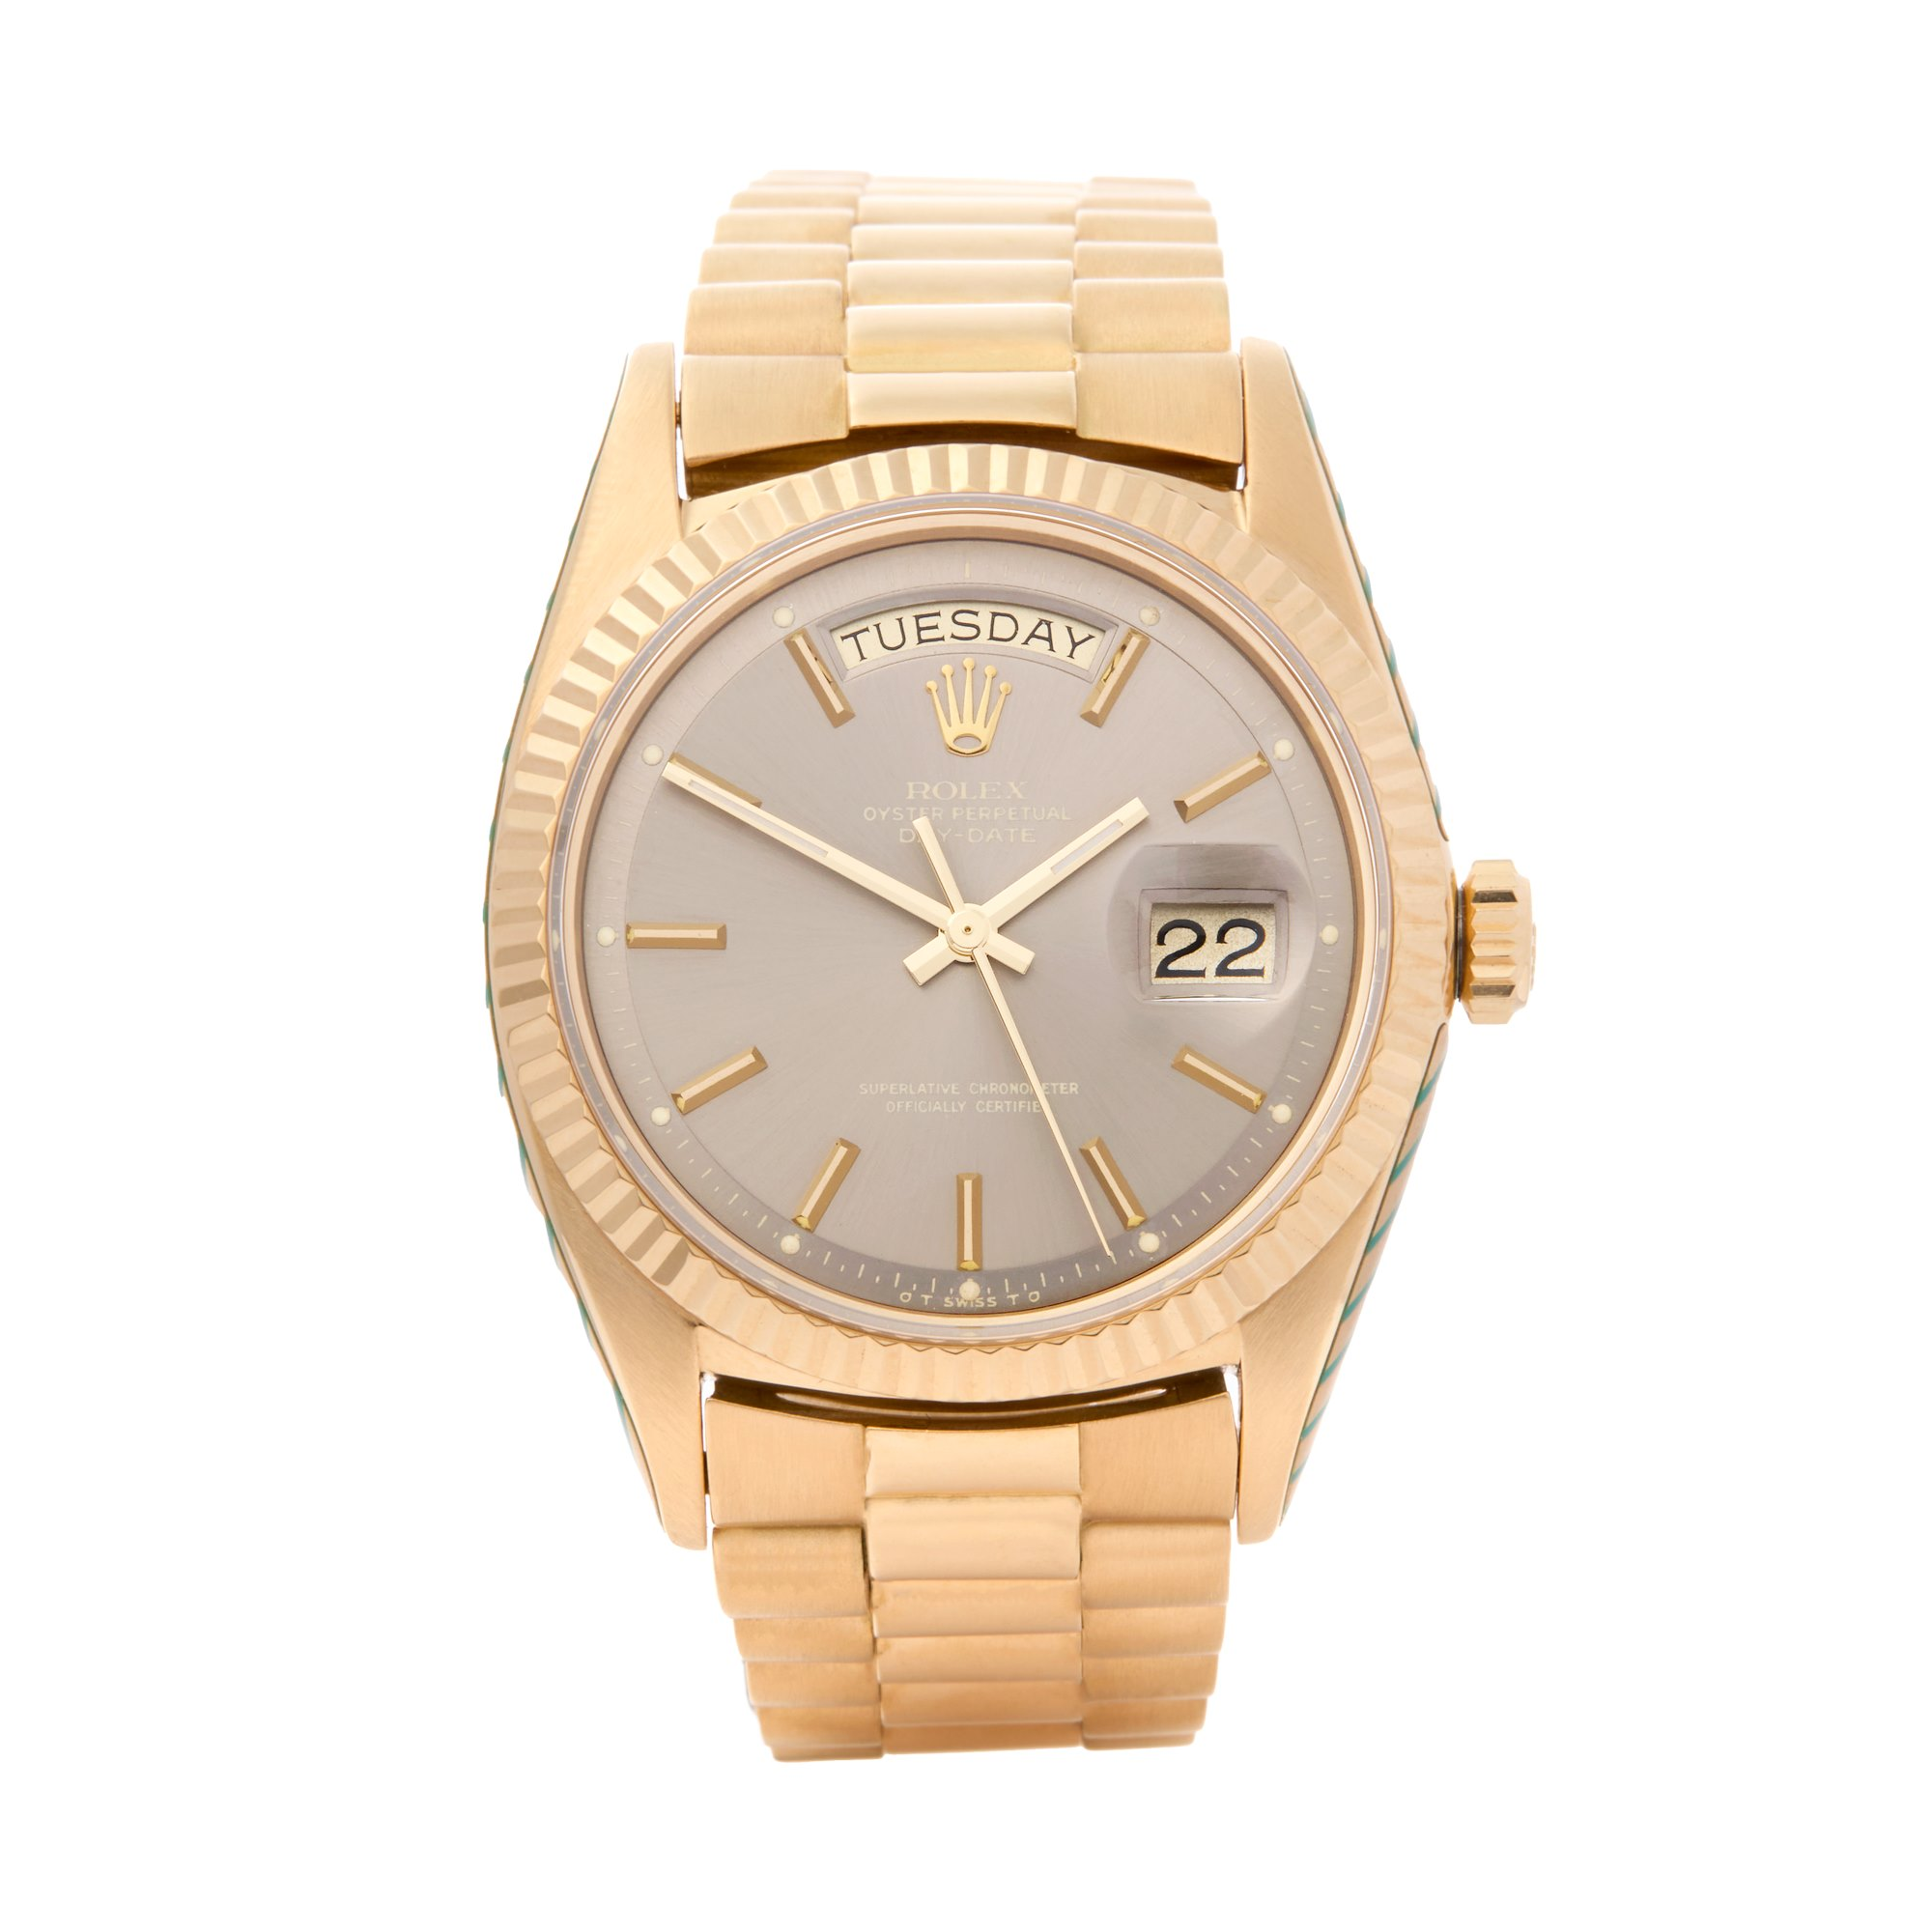 Rolex Day-Date 18K Yellow Gold 1803